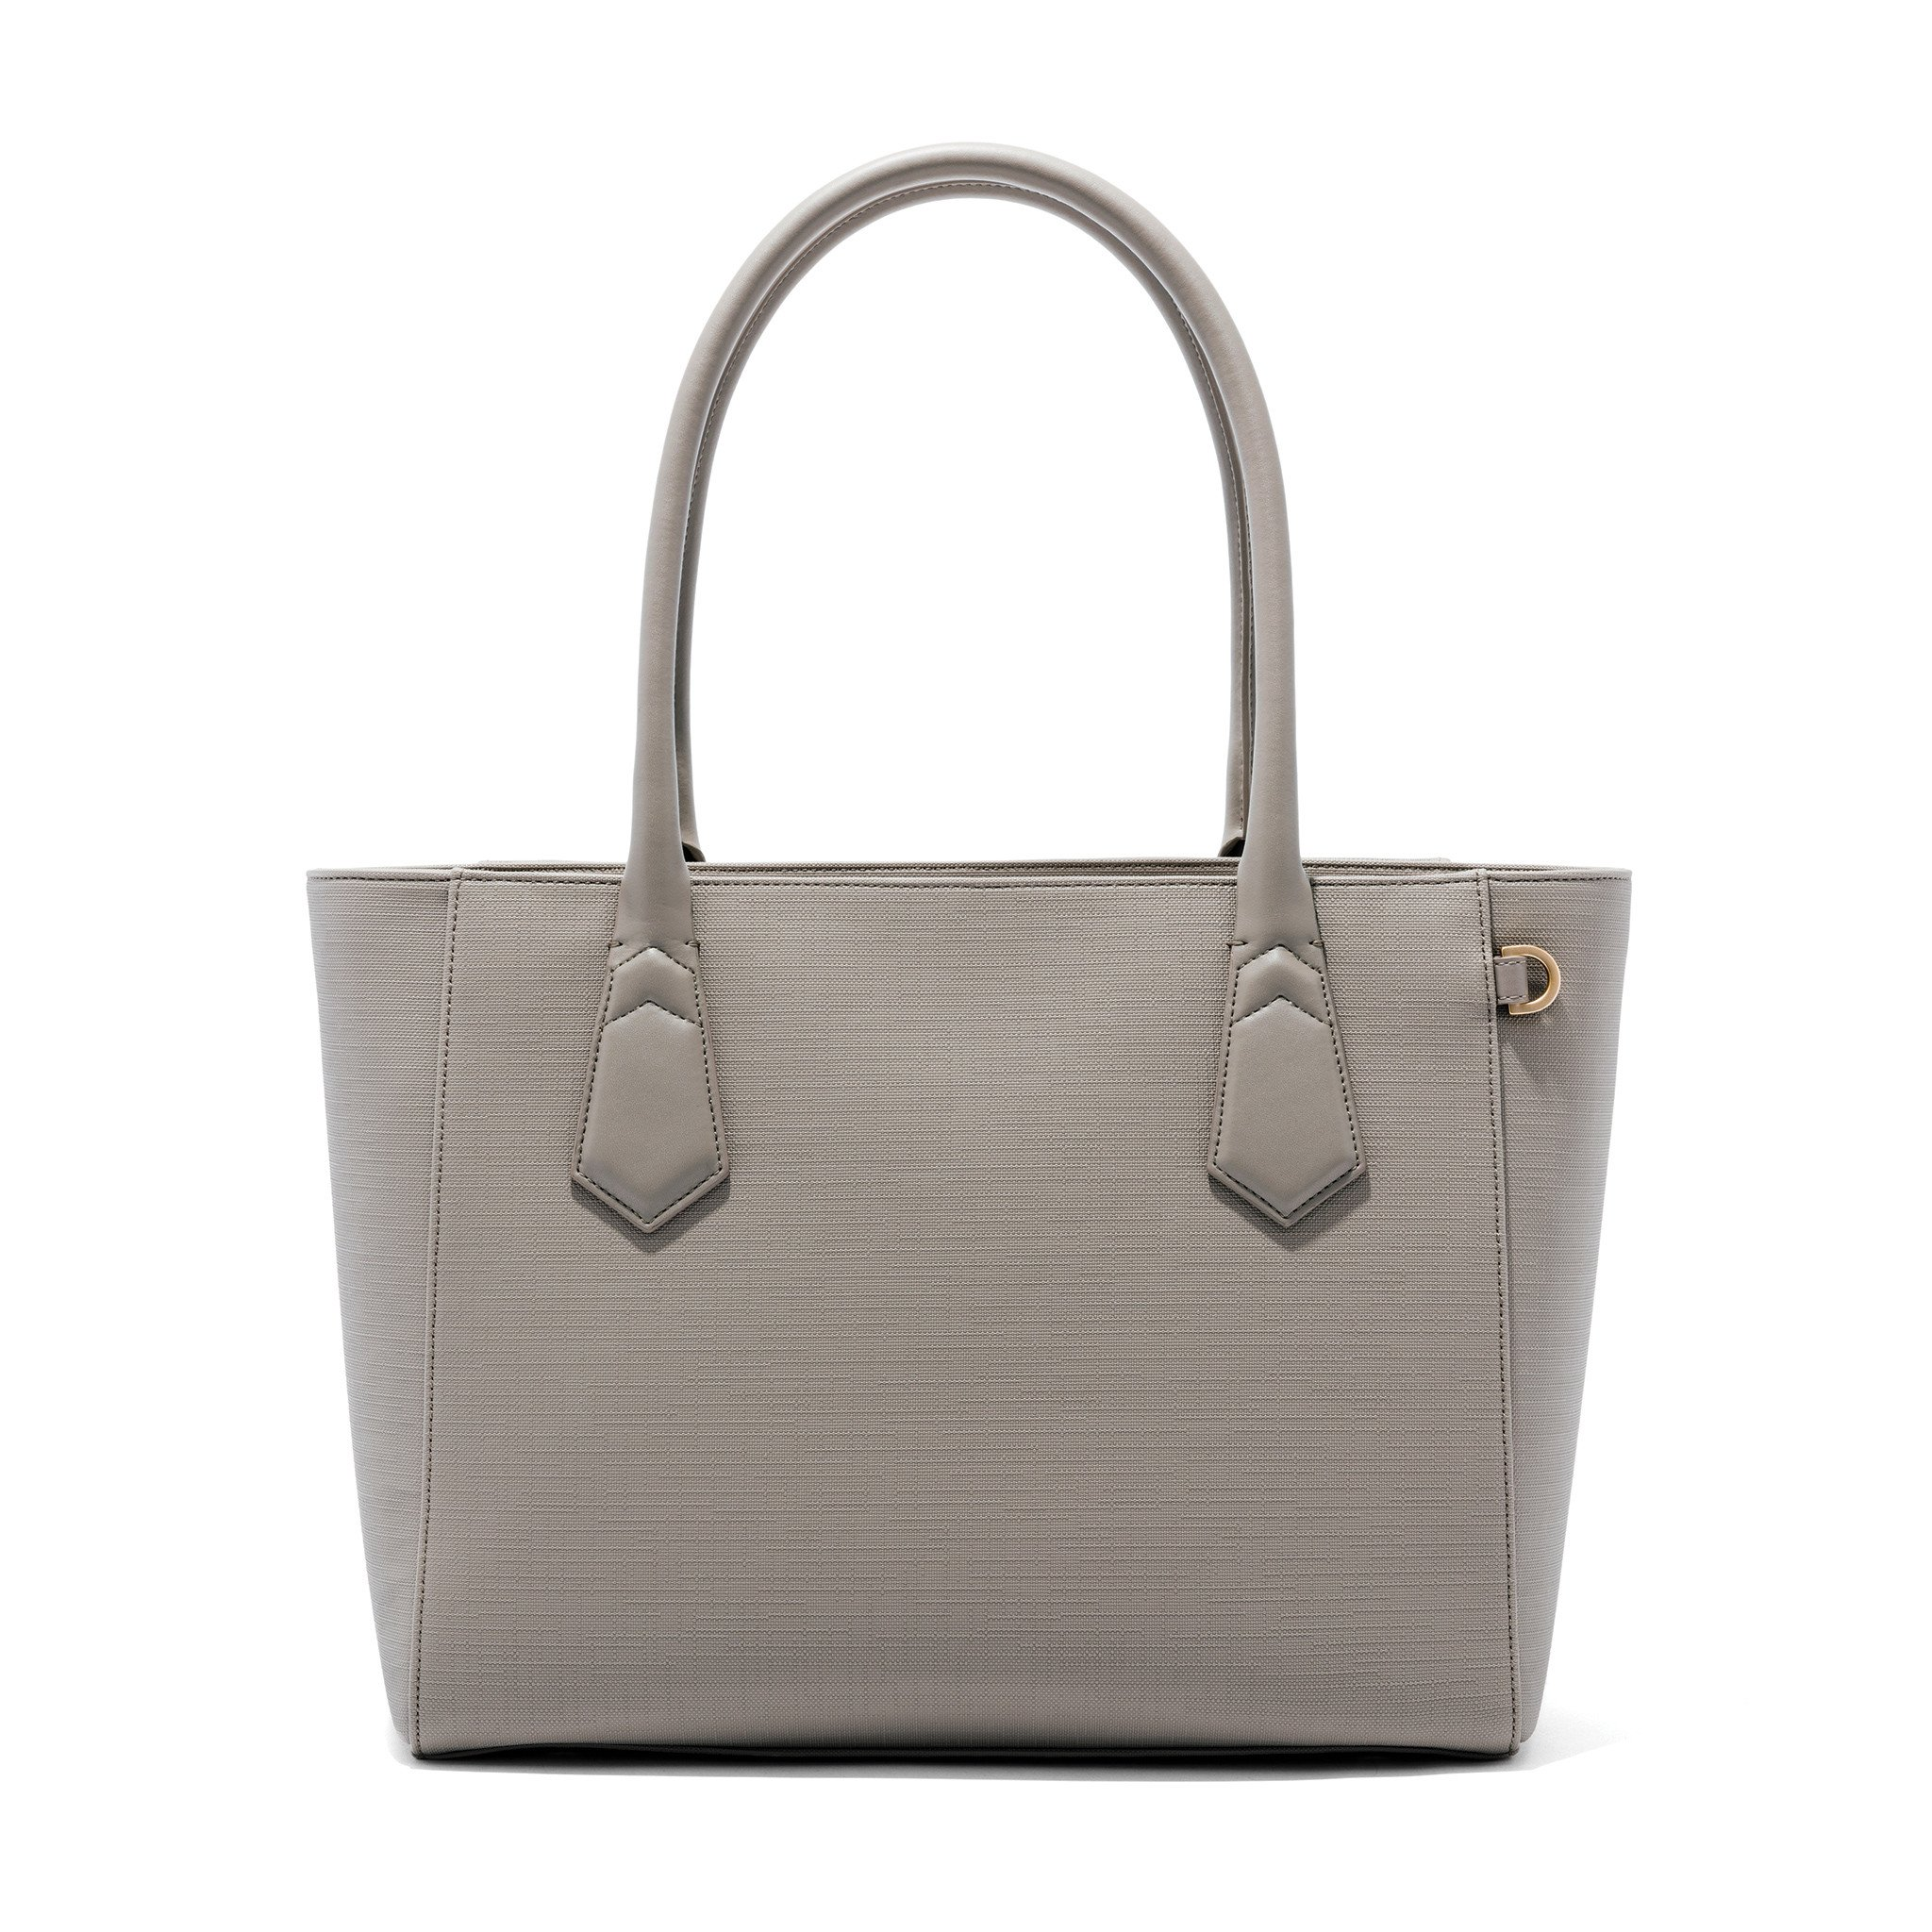 dagne-dover-classic-bag-review